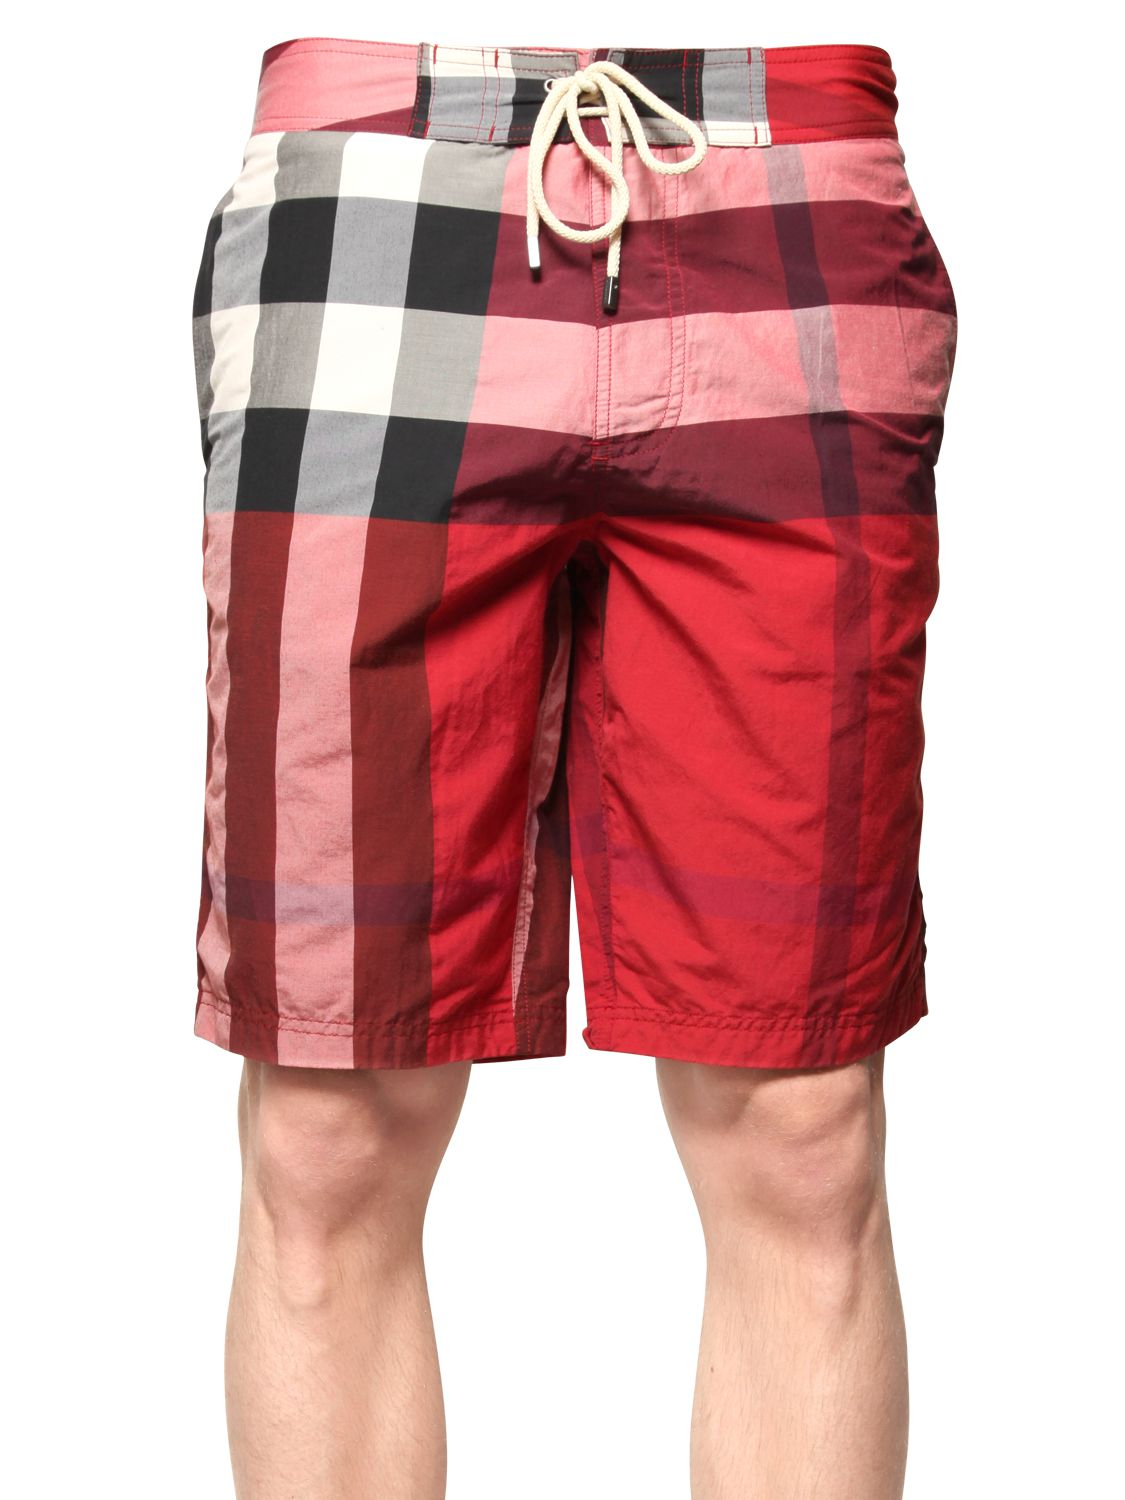 7787b2fd9a119 Burberry Brit Macro Check Cotton Blend Swimming Shorts in Red for ...